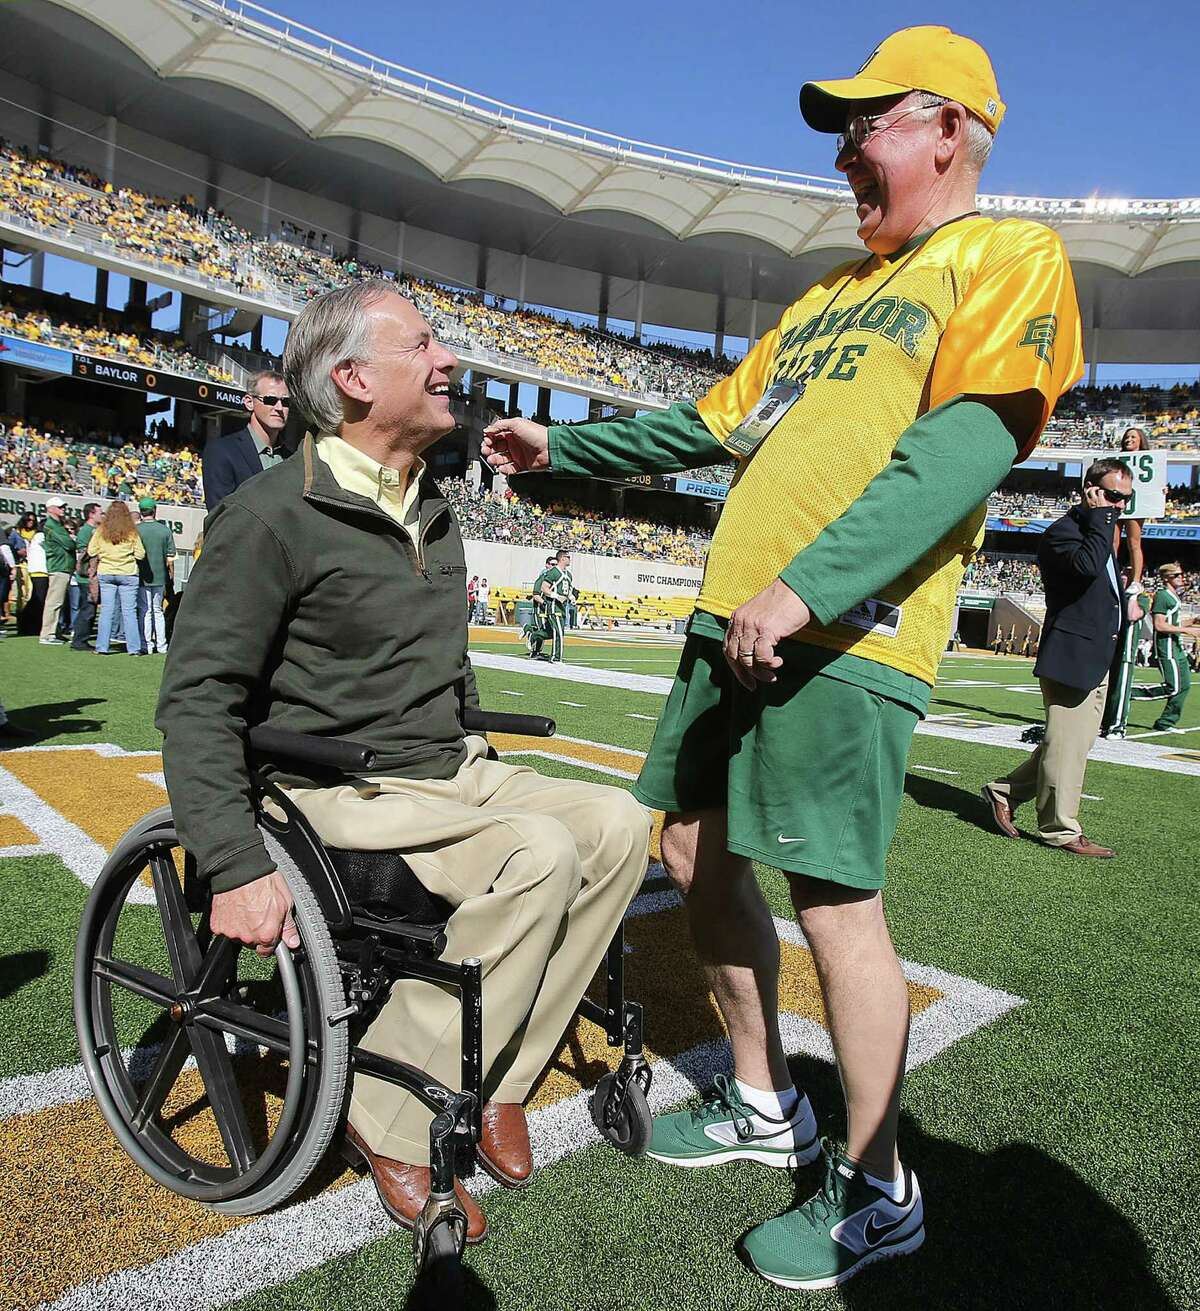 Republican gubernatorial candidate Texas Attorney General Greg Abbott, left, and Baylor President Ken Starr share a laugh at McLane Stadium before the game against Kansas Nov. 1, 2014, in Waco, Texas. (AP photo, Jerry Larson)